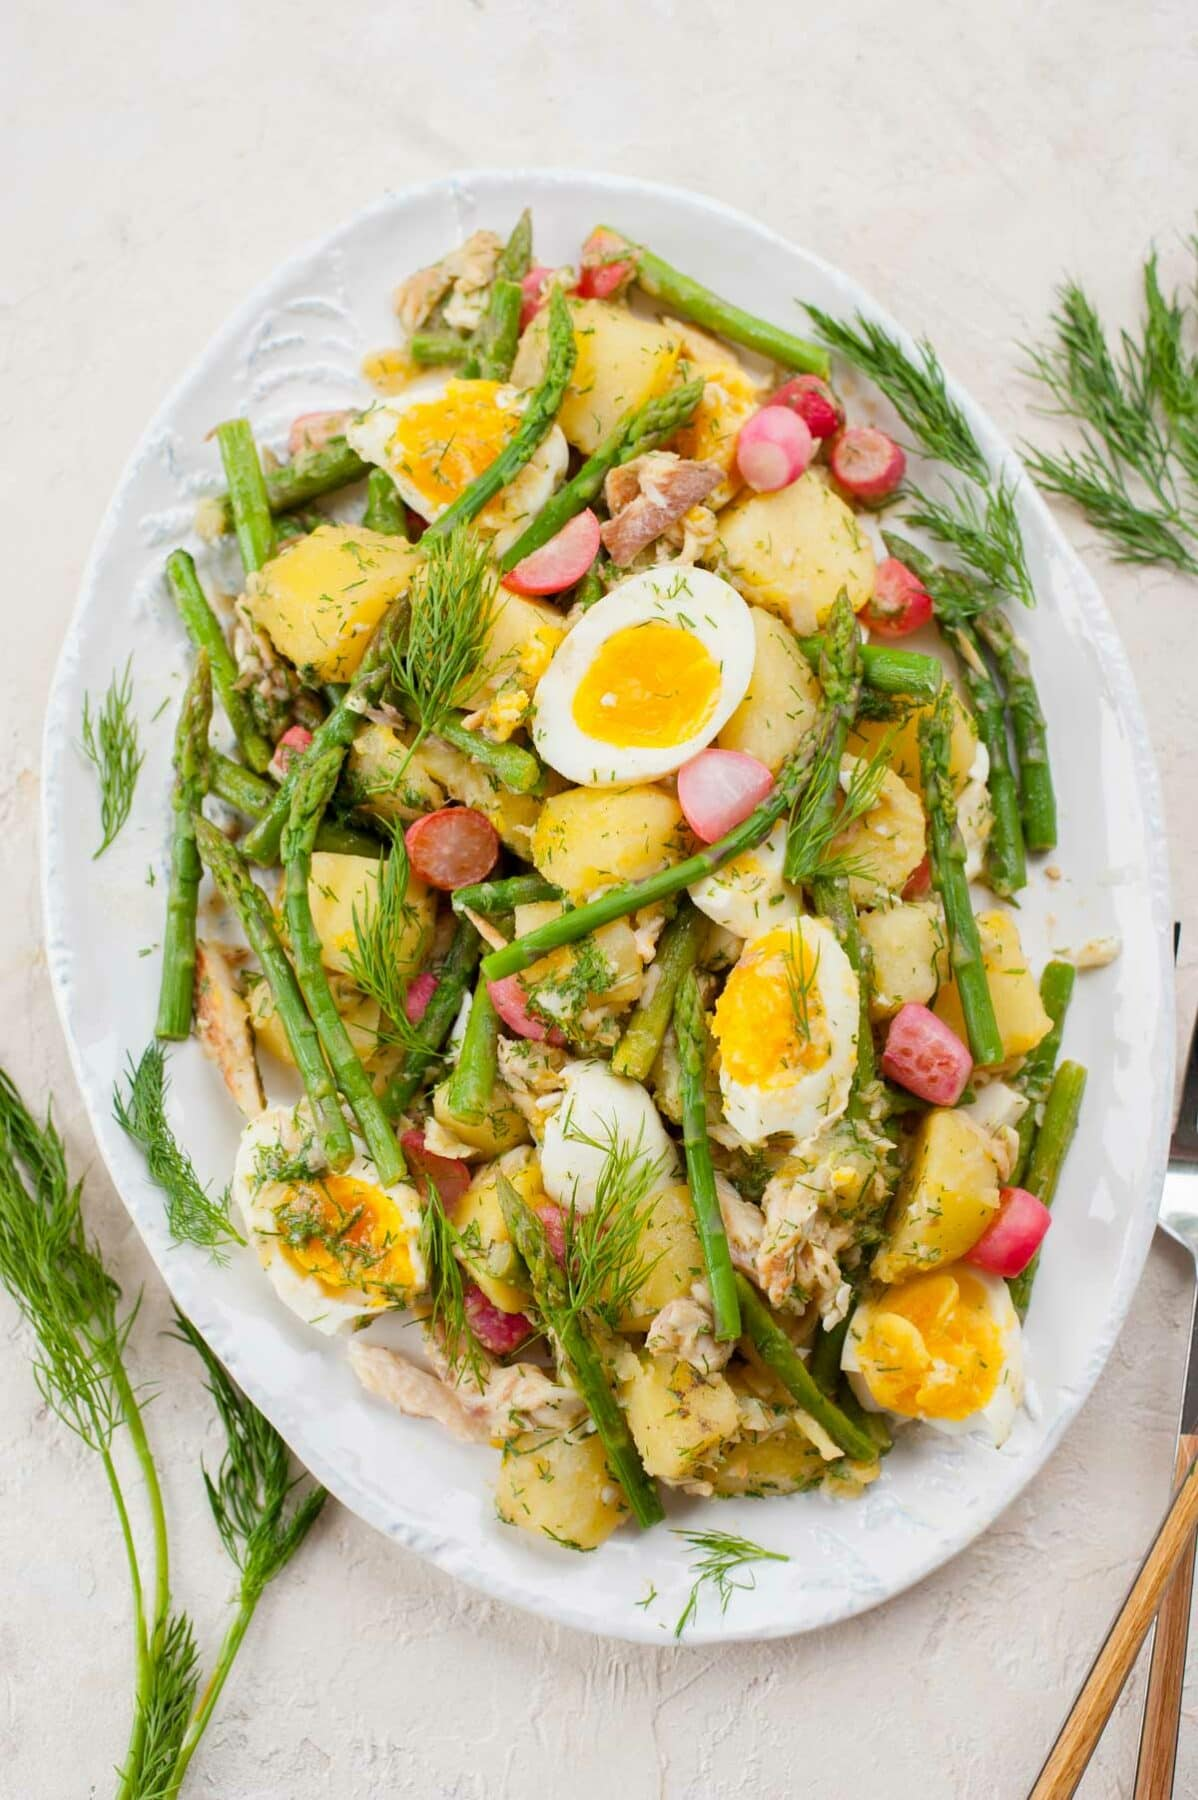 Potato and asparagus salad with eggs and smoked trout on a white plate